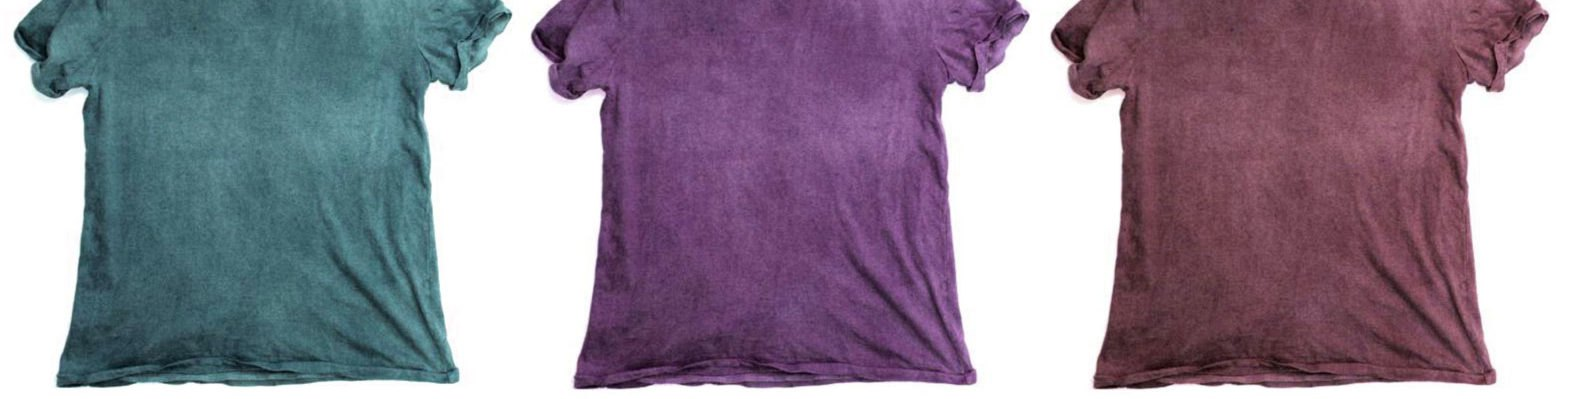 9e537f1214 This T-shirt changes colors in response to water pollution